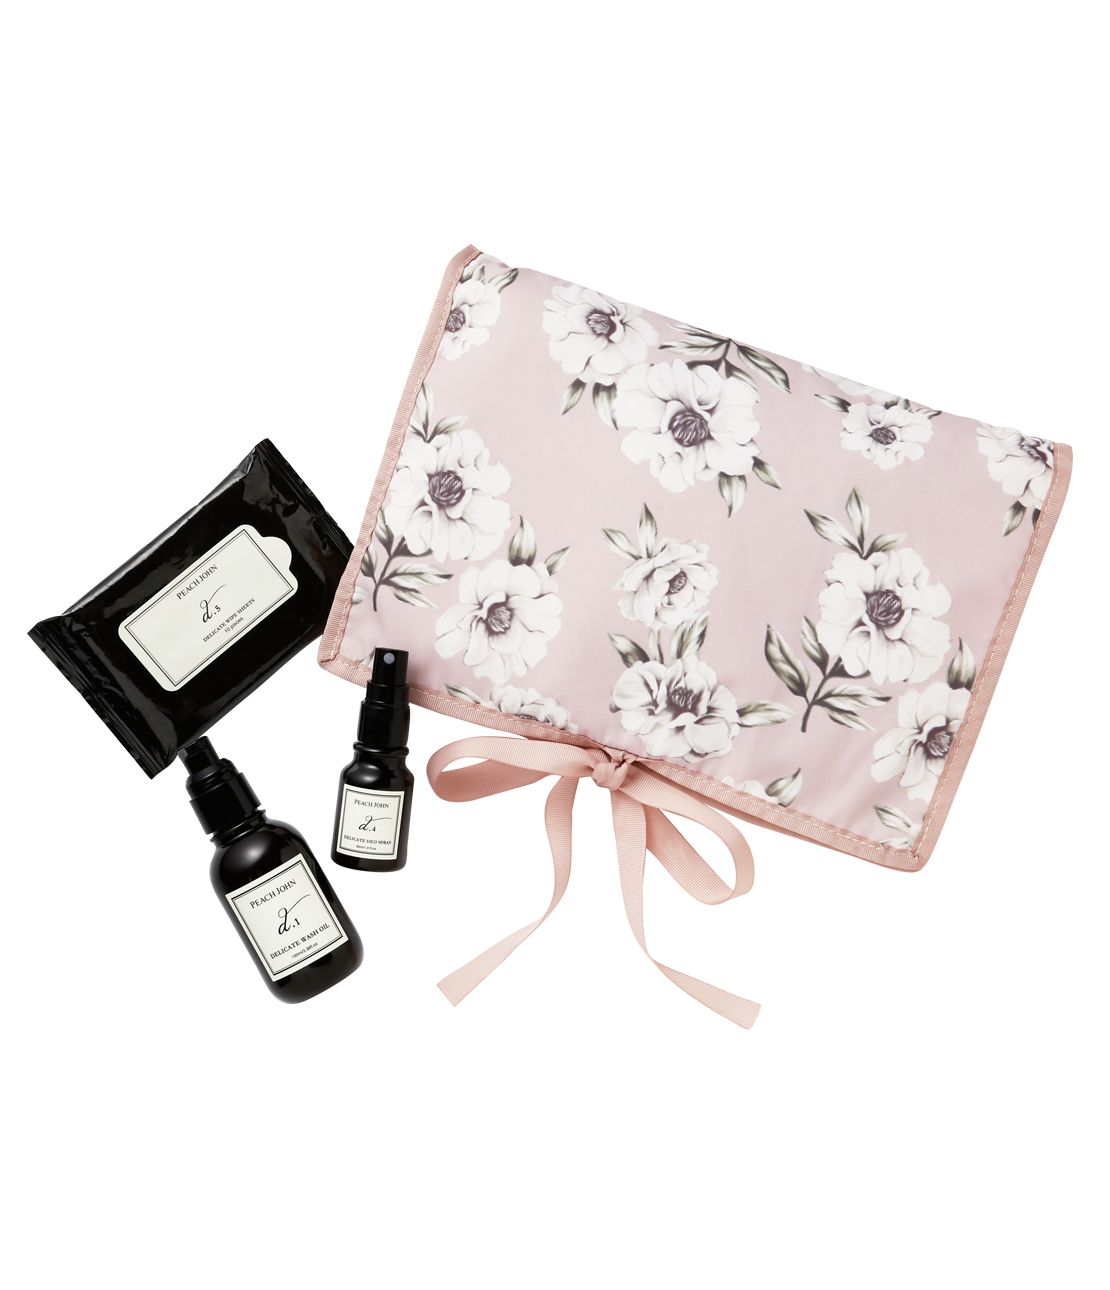 Delicate care set